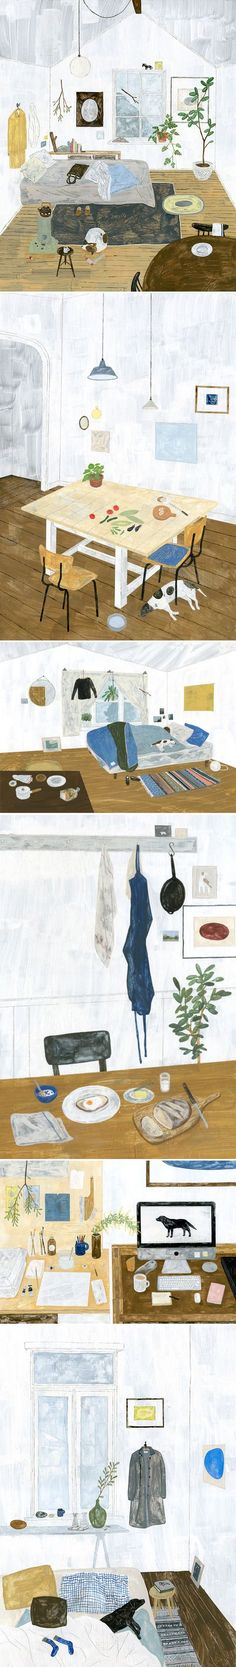 Series of paintings by Fumi Koike including Warm Room, Summer Day, Back to Sleep, Morning, and Workspace.  Fumi Koike is an illustrator based in Tokyo, Japan.   http://fumikoike.blogspot.ae/